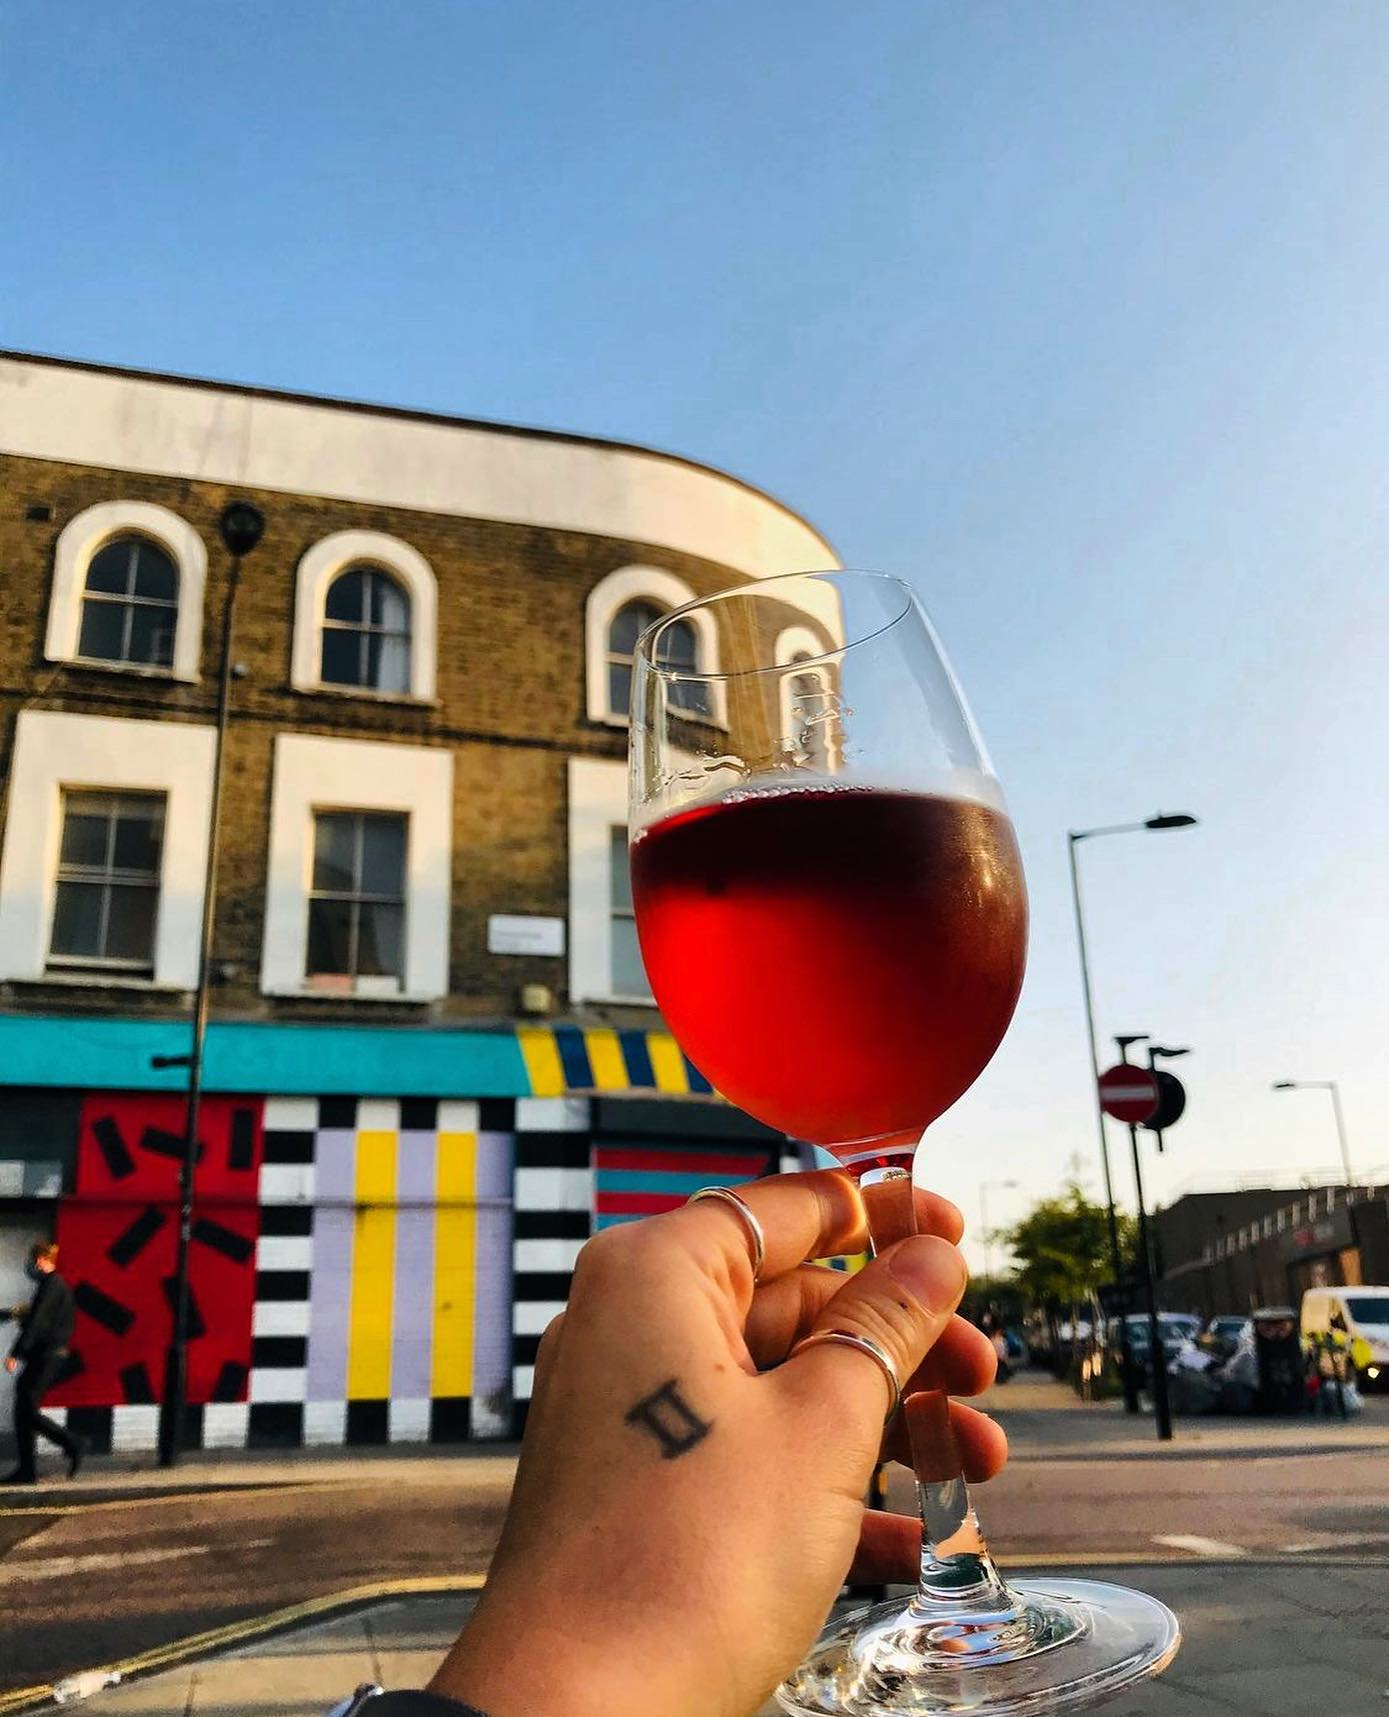 Perfect evening for a rosé on our benches! 🍷❤️🍕 Could be the last of the year!  Get on down boys and girls! 💃💃🥳🥳  . . . . #rose #wine #madregale #sweetwine #hackney #hackneywick #pizzatime #pizzaparty #pizzalife #pizzaandwine #pizzalover #winelover #winetime #sunnyday #septembersun #sunnyday #crisp #yummy #delicious #wellstreet #wellstreetpizza